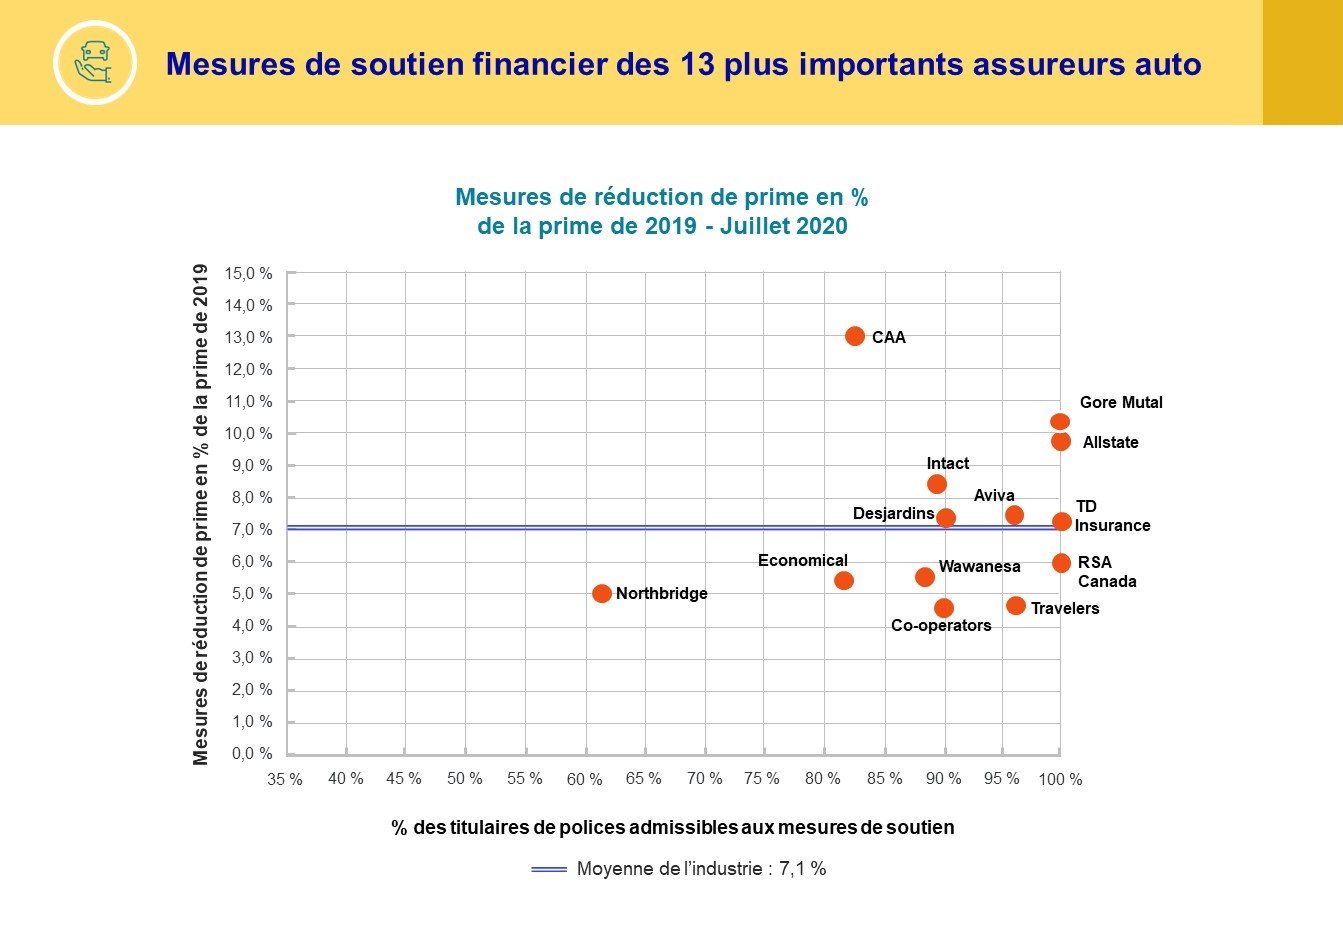 Mesures de soutien financier des 13 plus importants assureurs auto